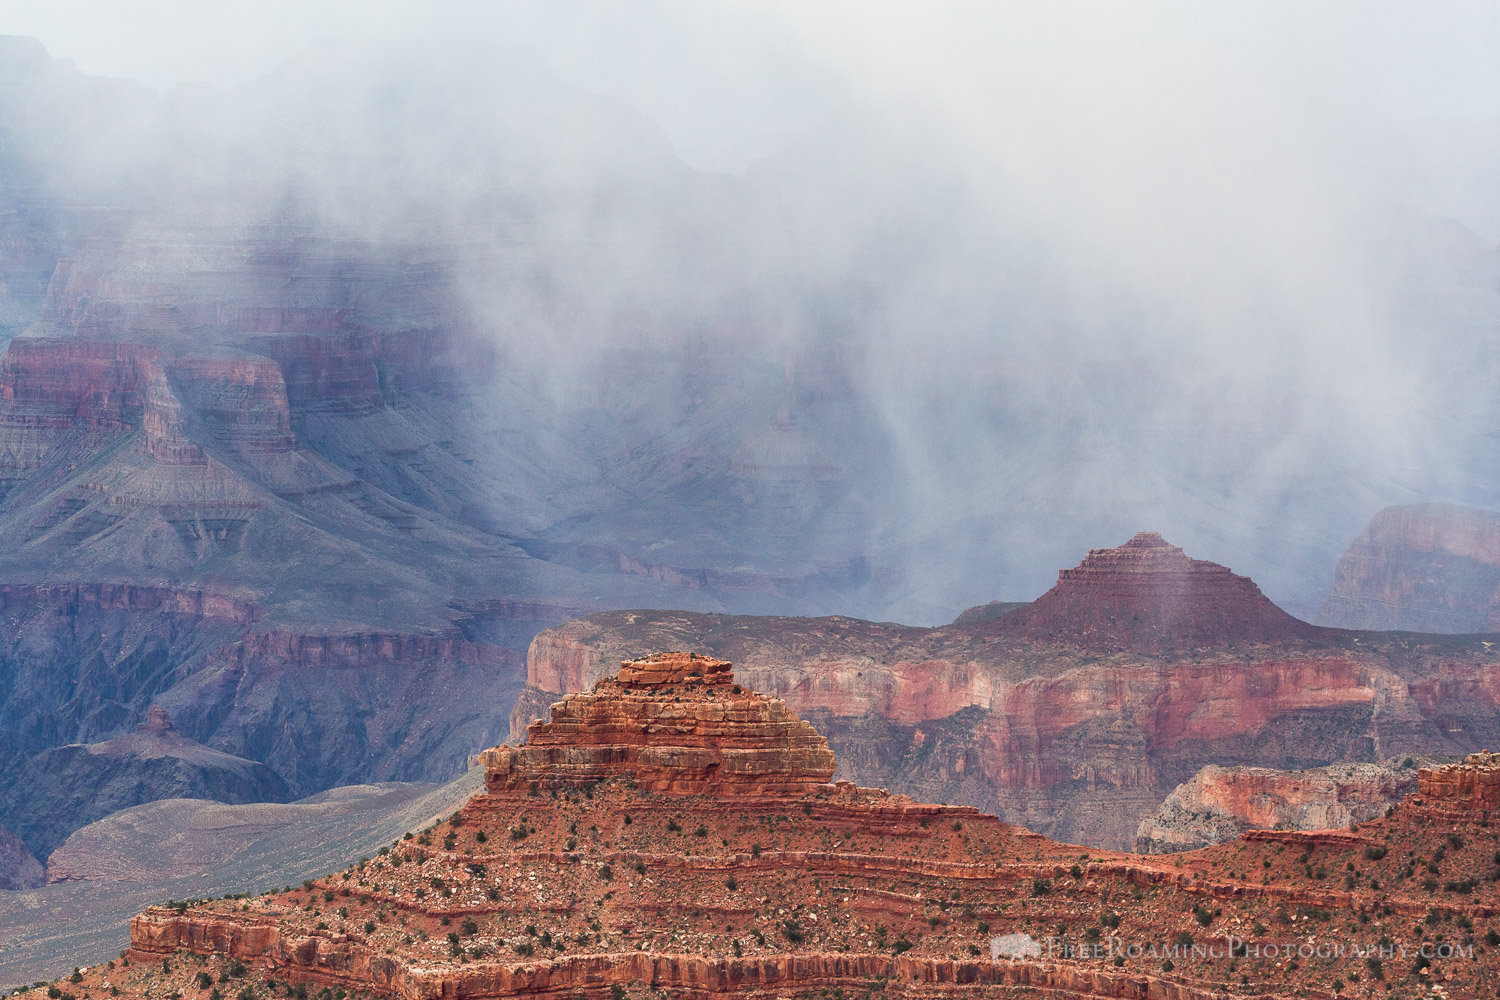 Snowfall over Grand Canyon